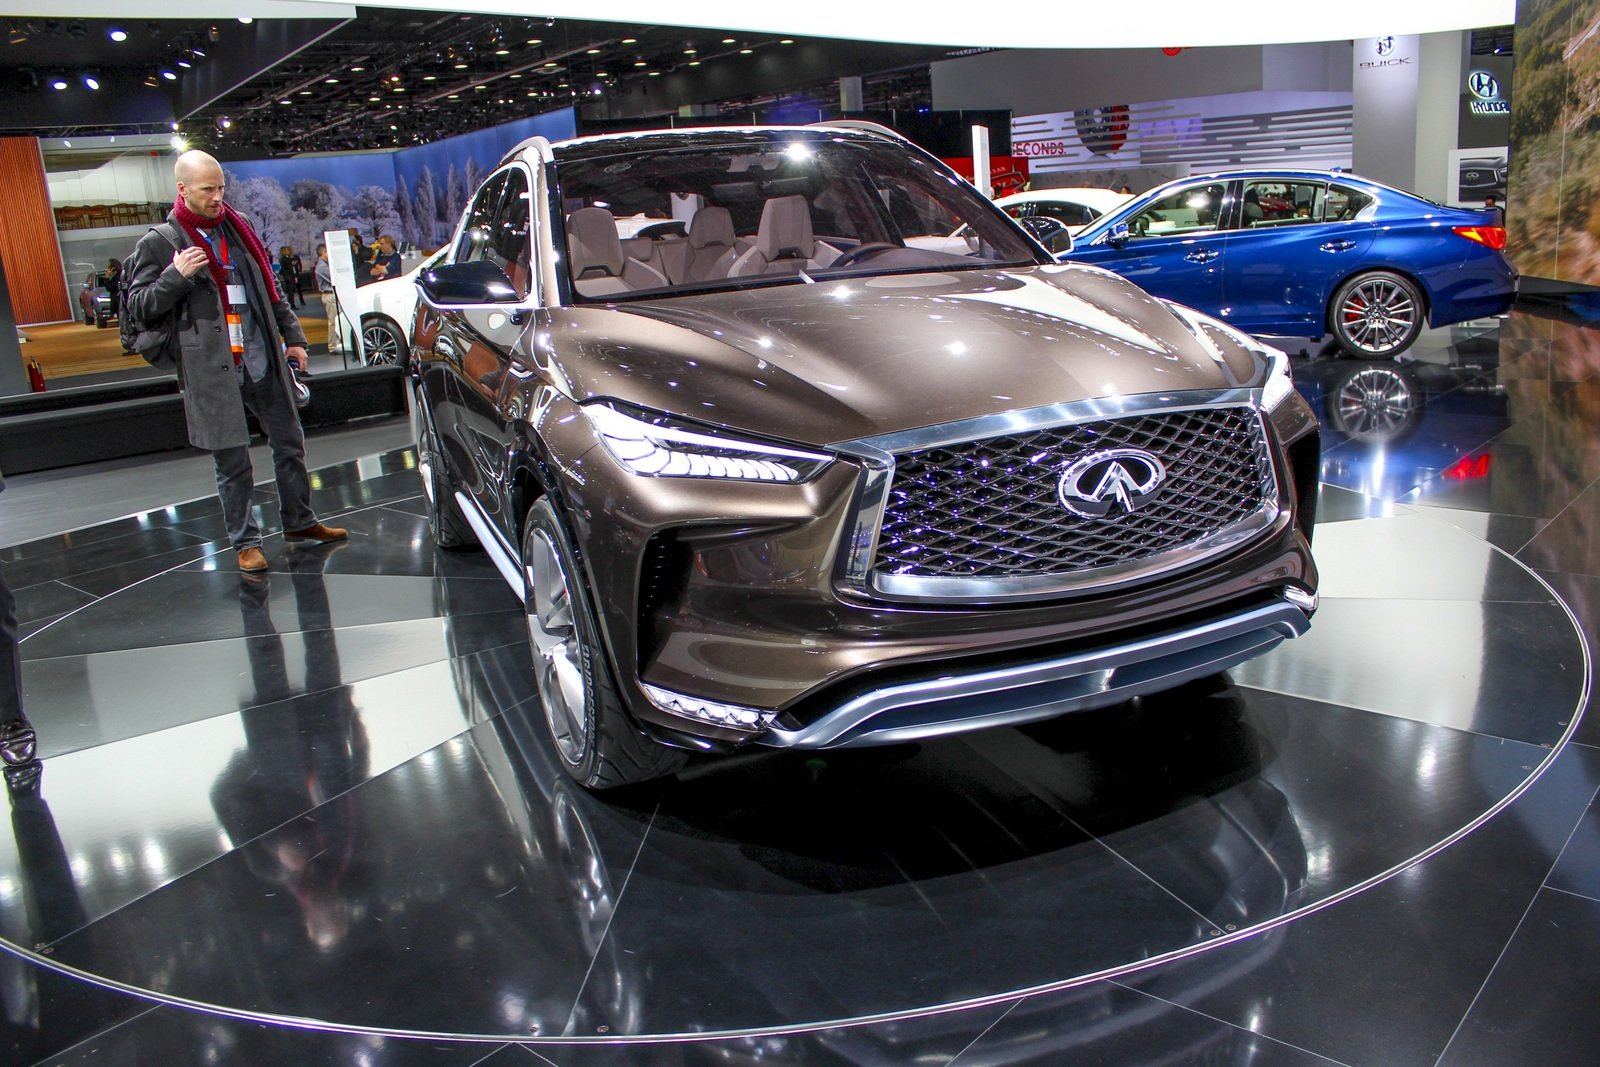 2017 infiniti qx50 concept picture 702024 car review top speed. Black Bedroom Furniture Sets. Home Design Ideas